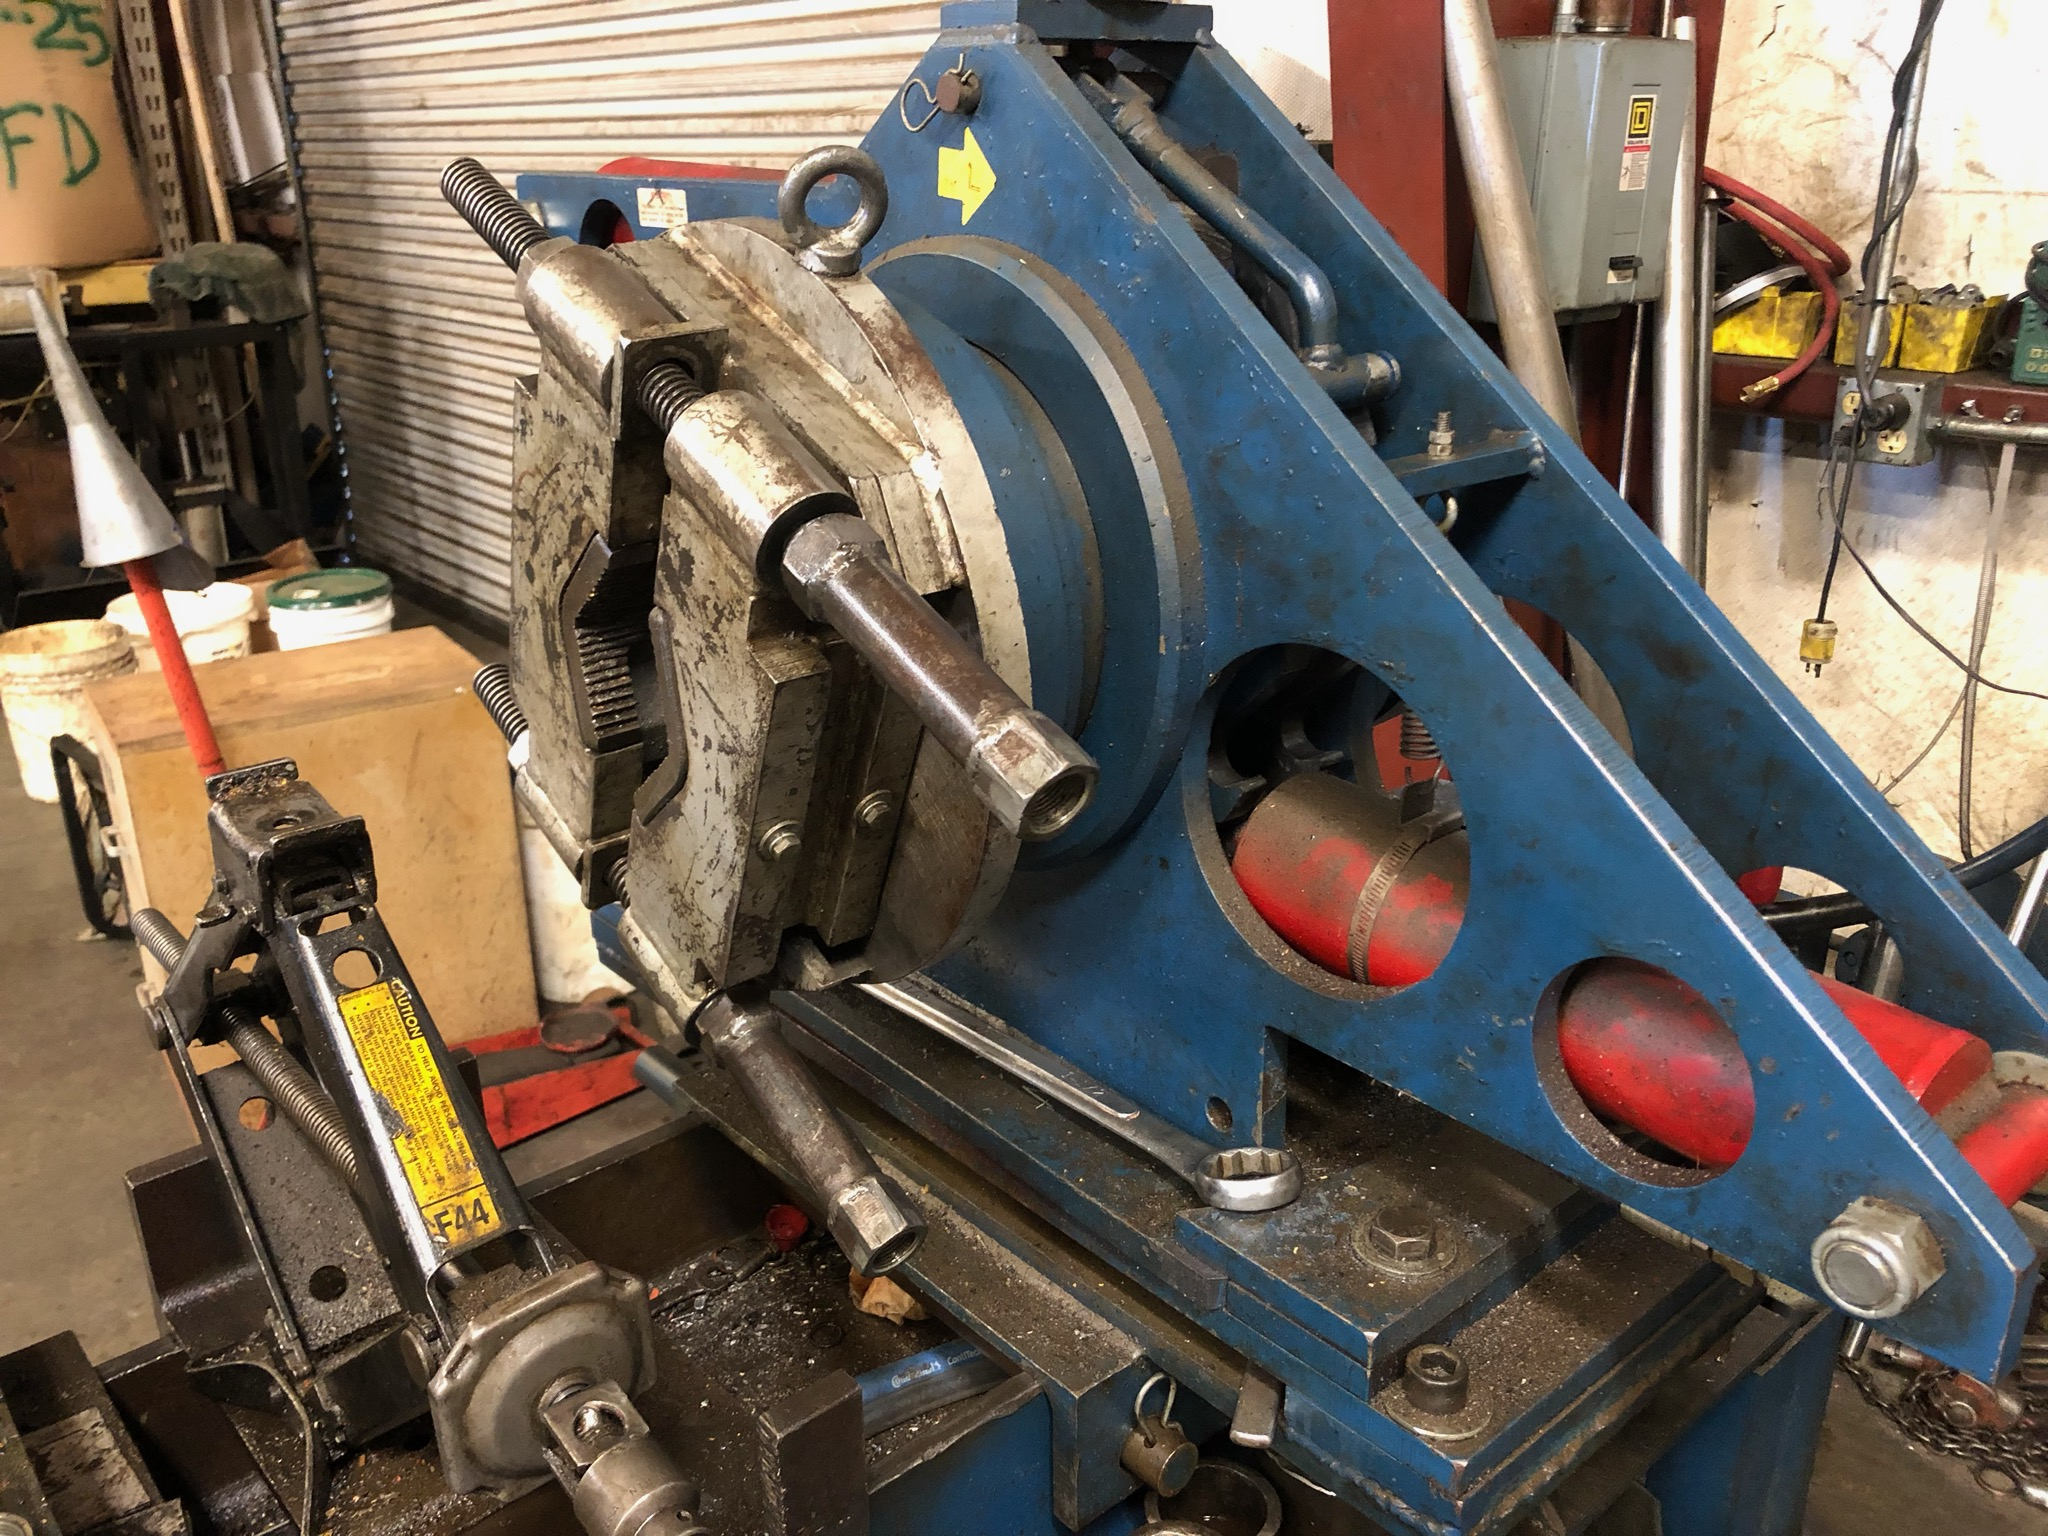 """The """"Nut Buster"""" - Our hydraulic torque wrench can generate 35,000 foot pounds of torque for disassembly and reassembly of high torque cylinders."""